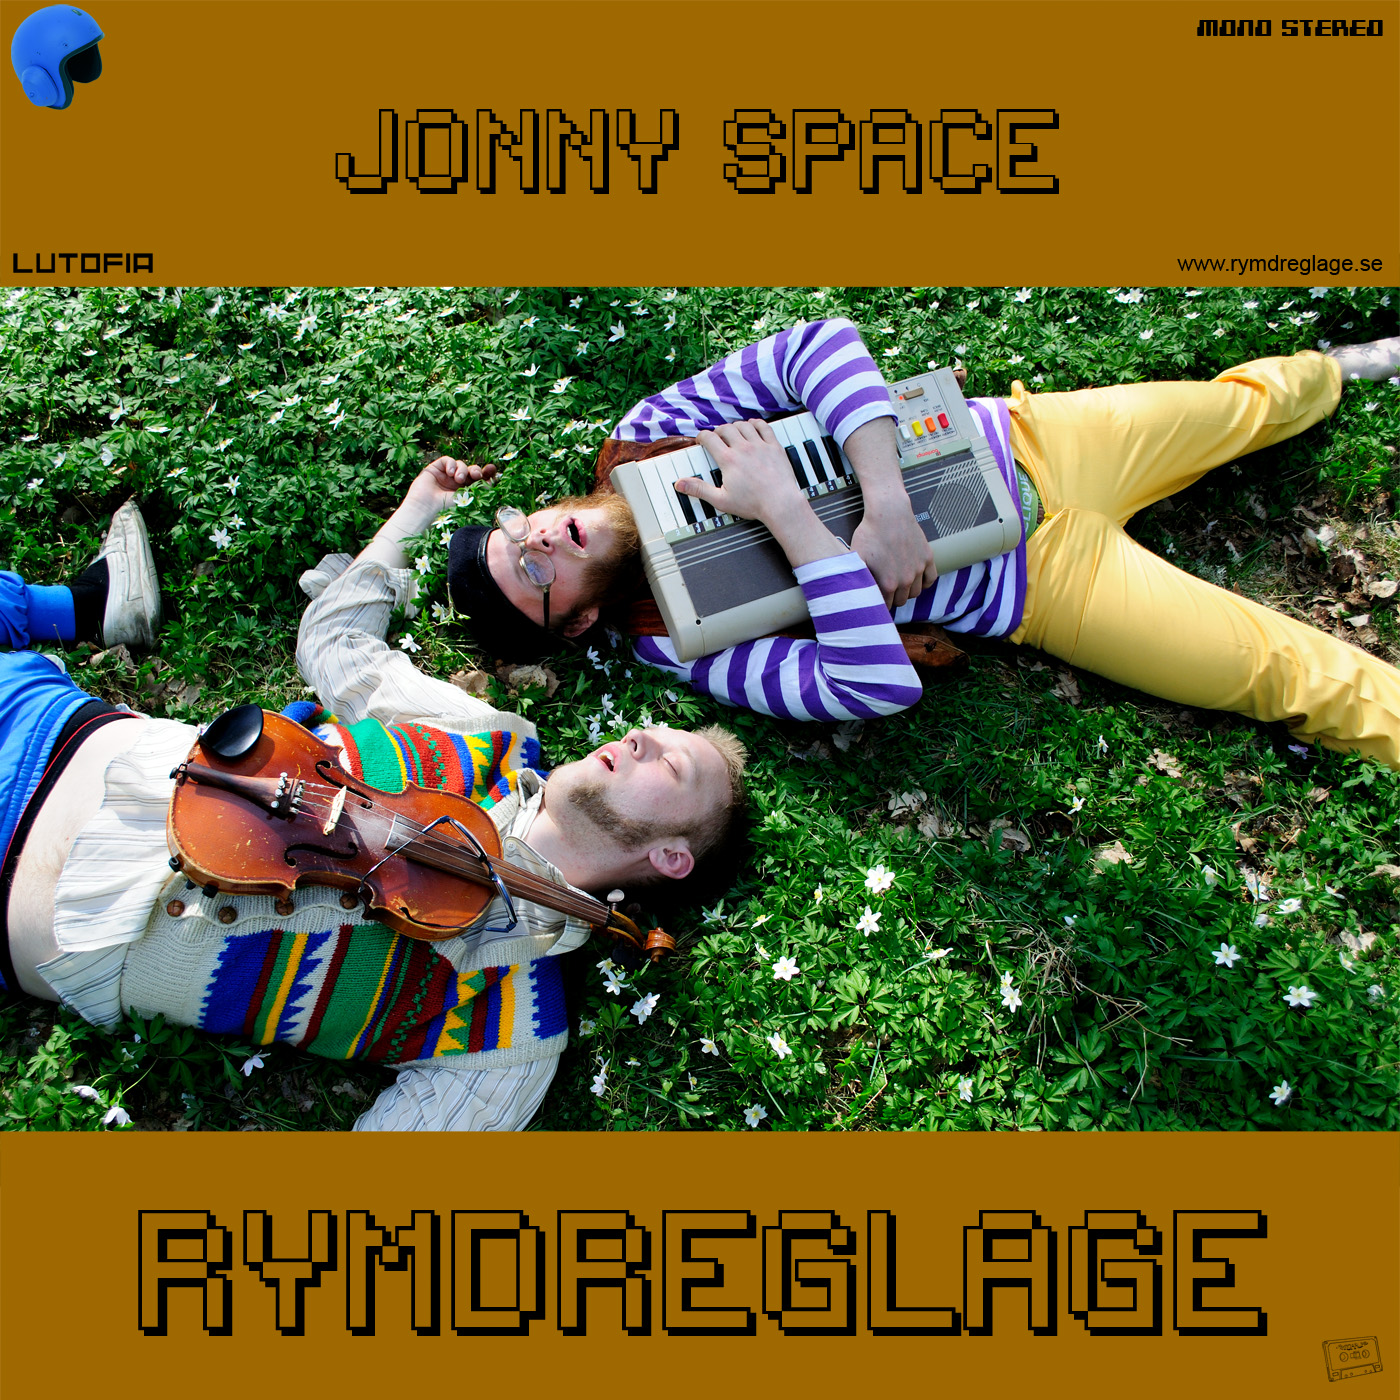 jonny space_to artspages